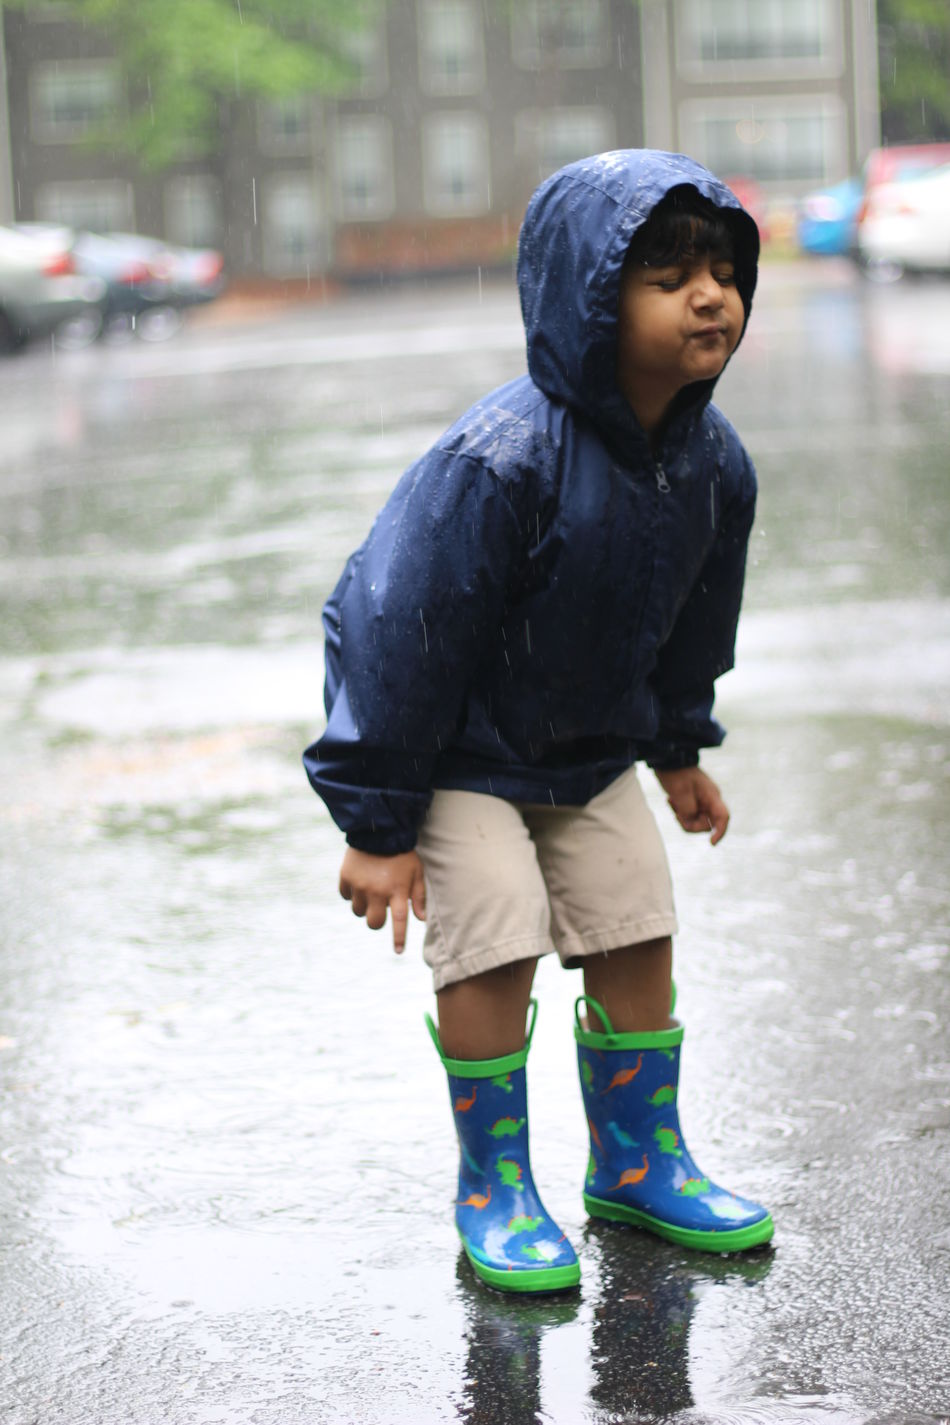 Boys Casual Clothing Childhood Day Focus On Foreground Full Length Lifestyles One Person Outdoors Puddle Real People Road Standing Street Walking Warm Clothing